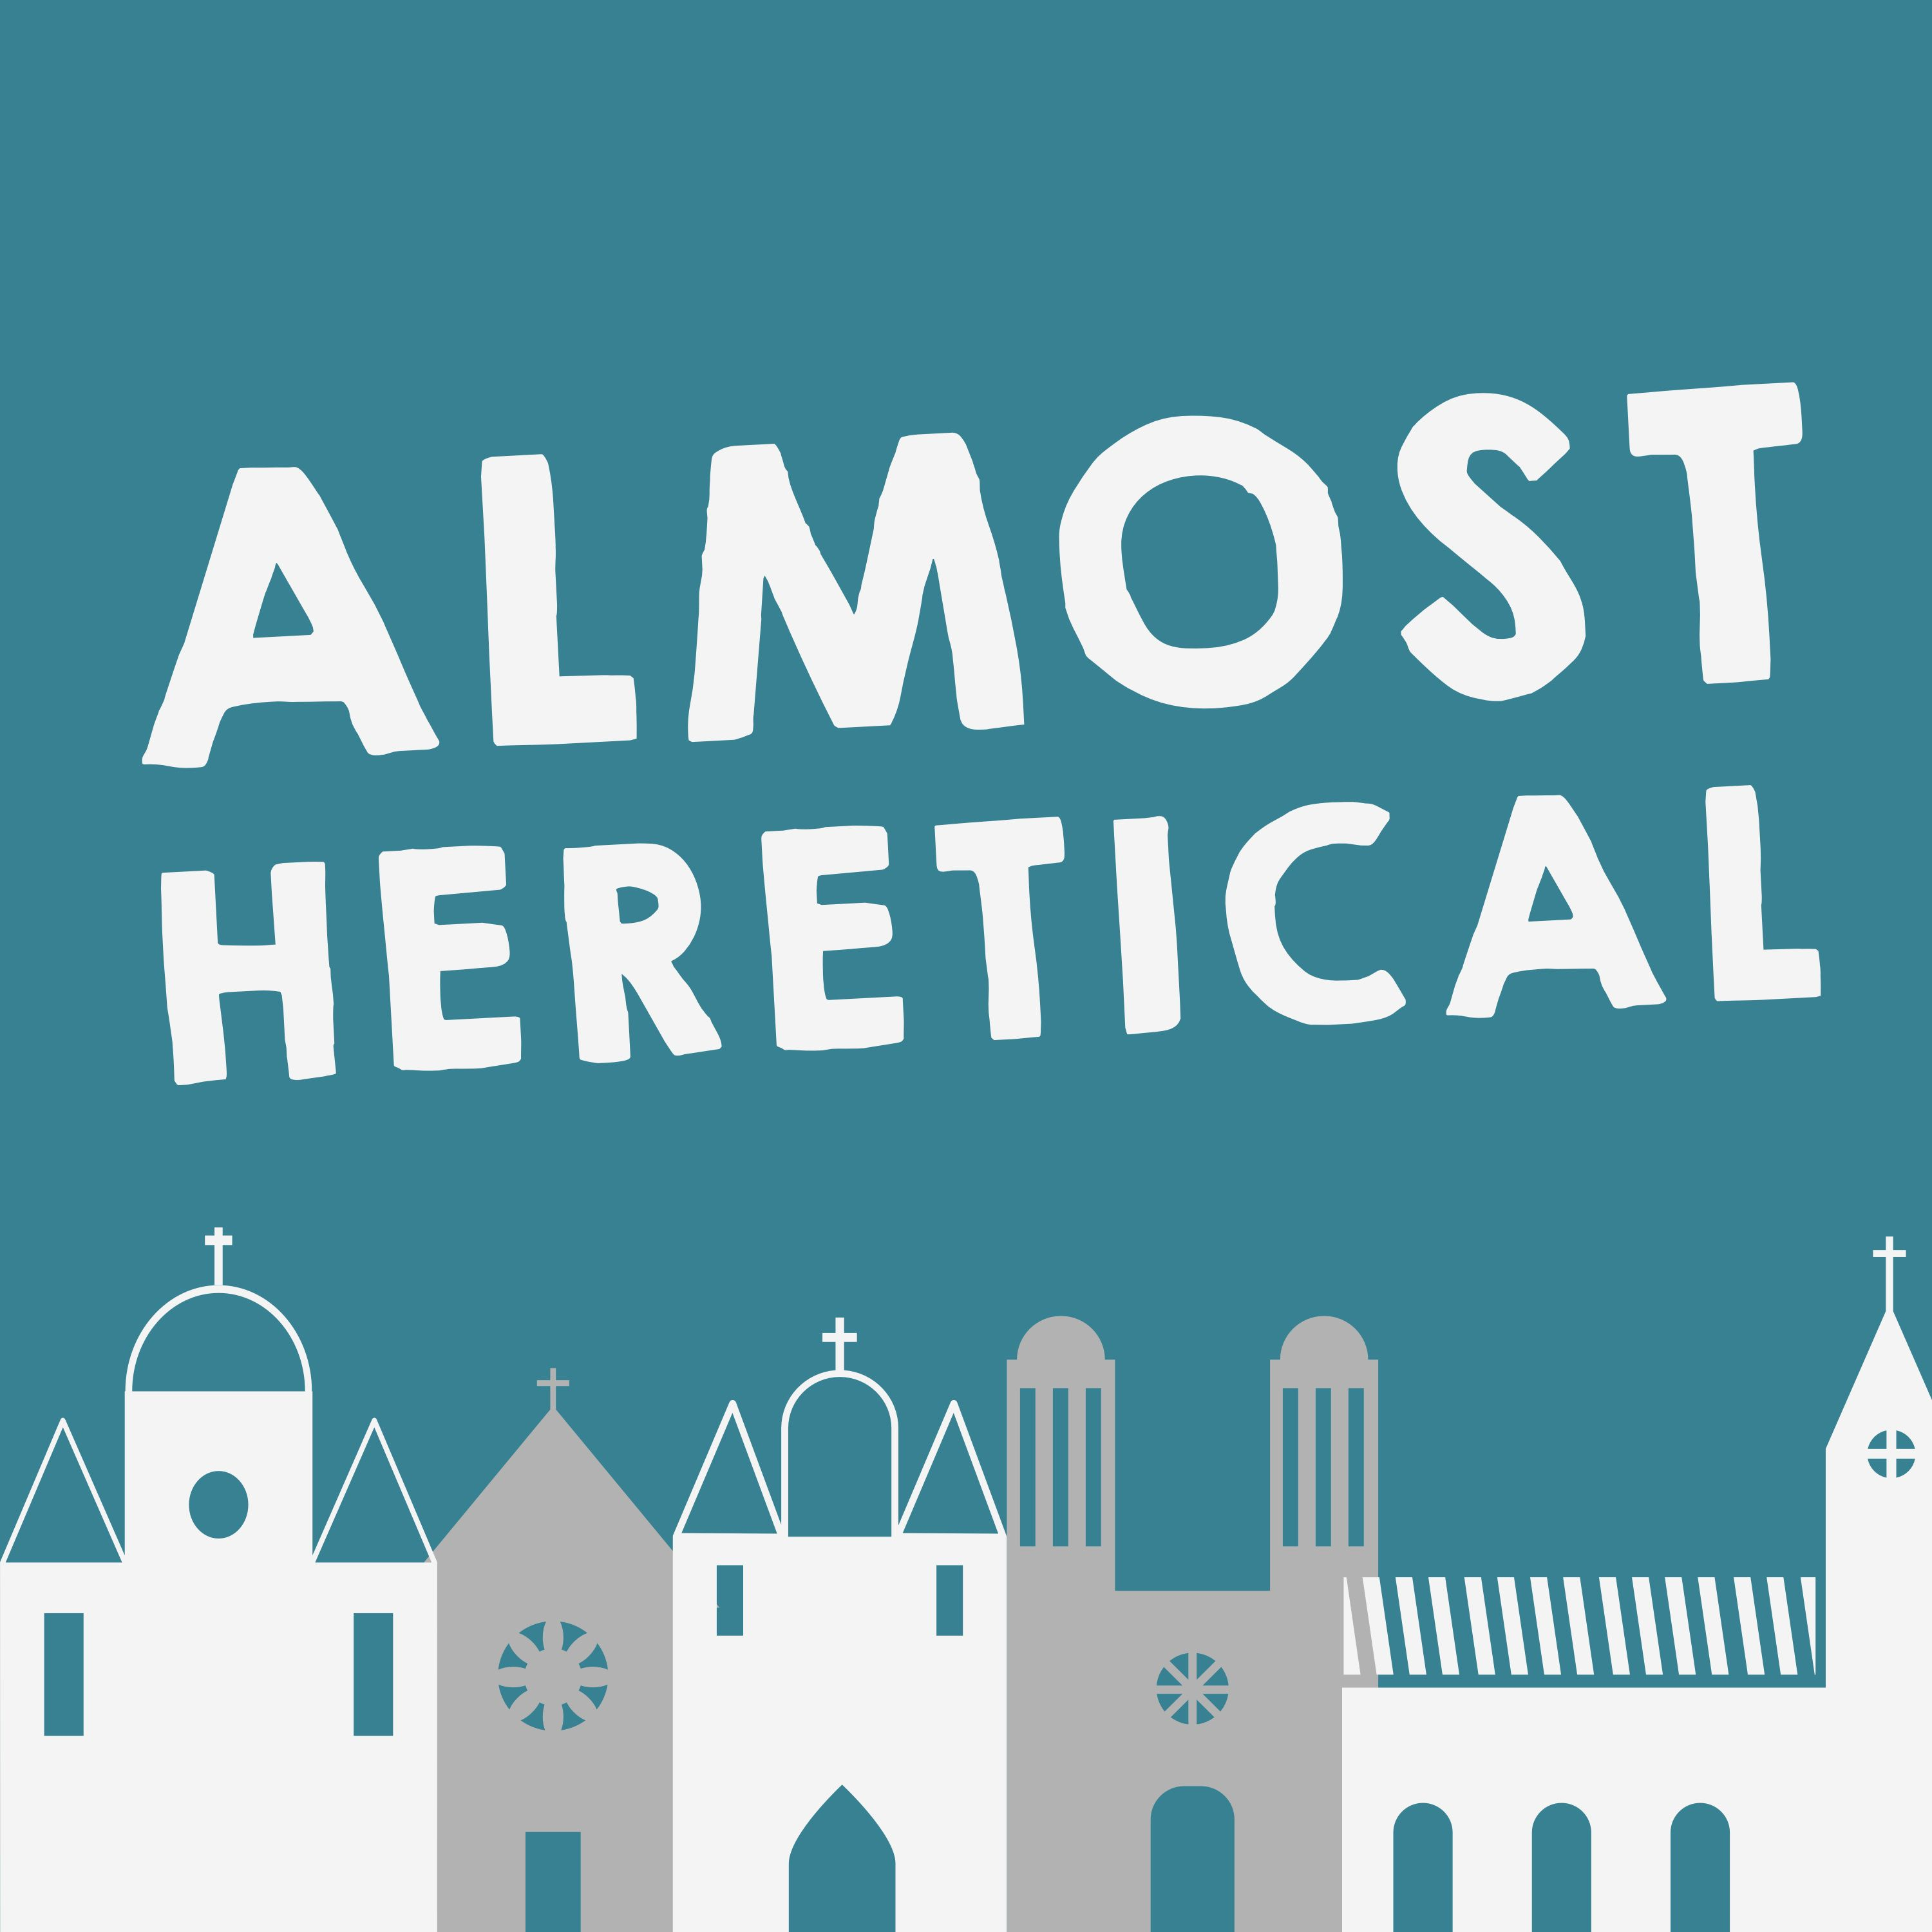 74: Should you go to church? (Utterly Heretical)